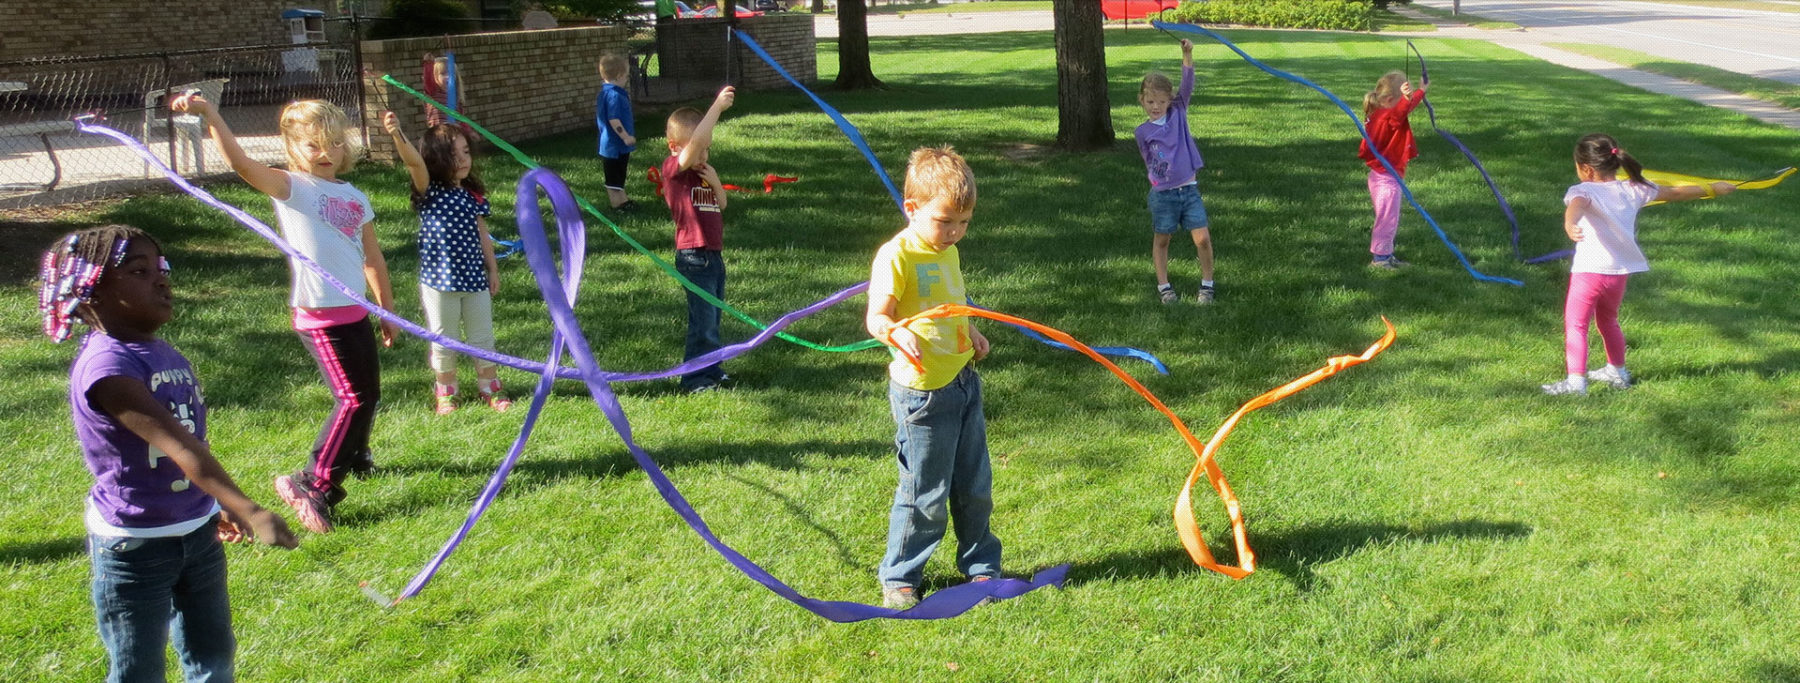 Minnesota's Top Rated Local® Child Care Providers Award Winner: TLC Early Learning Center